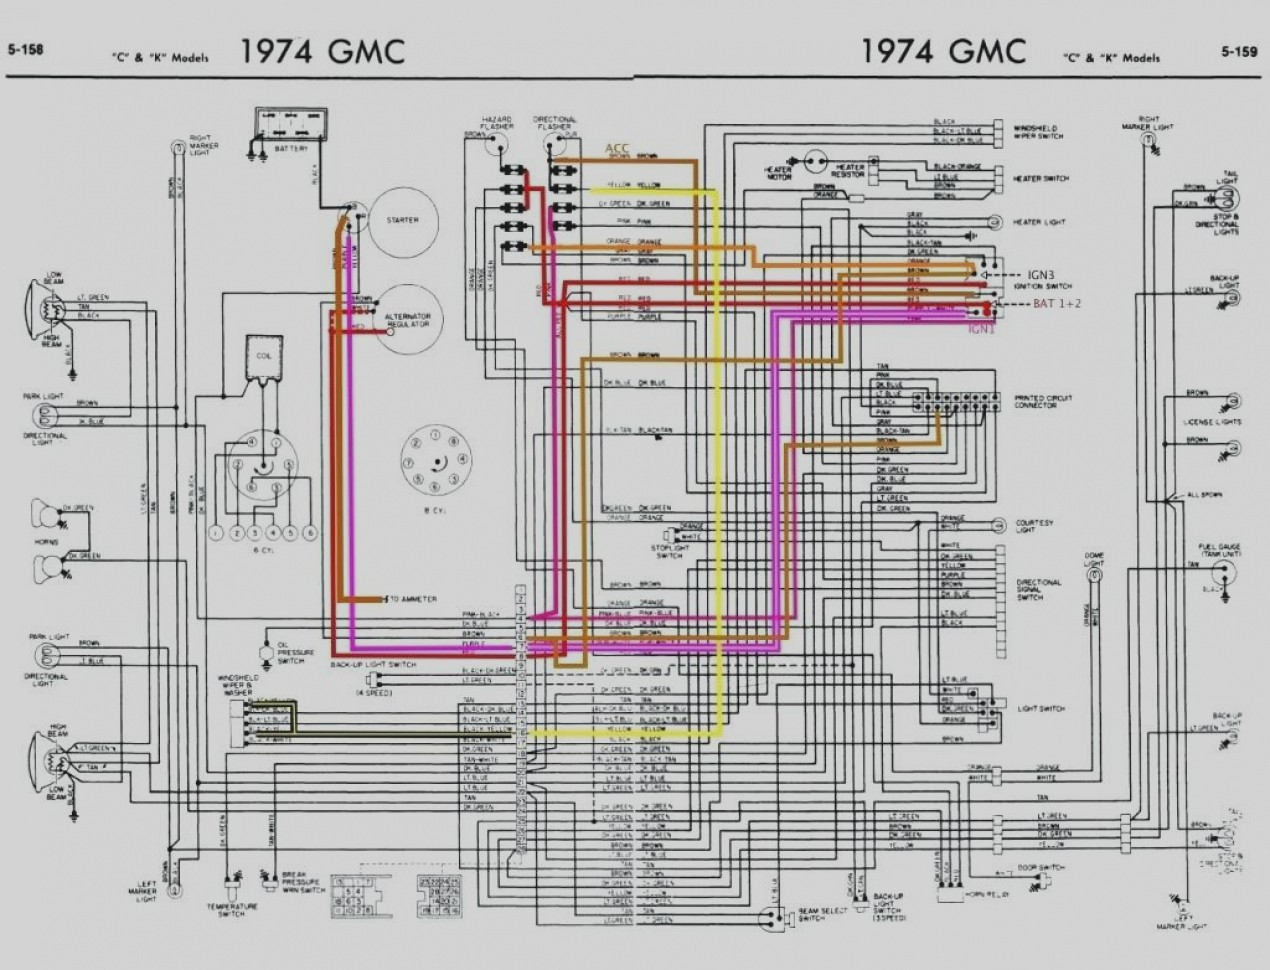 Chevy 1500 Wiring Diagram K15 - Varitrane Vav Air Valve Wiring Diagram for Wiring  Diagram SchematicsWiring Diagram Schematics